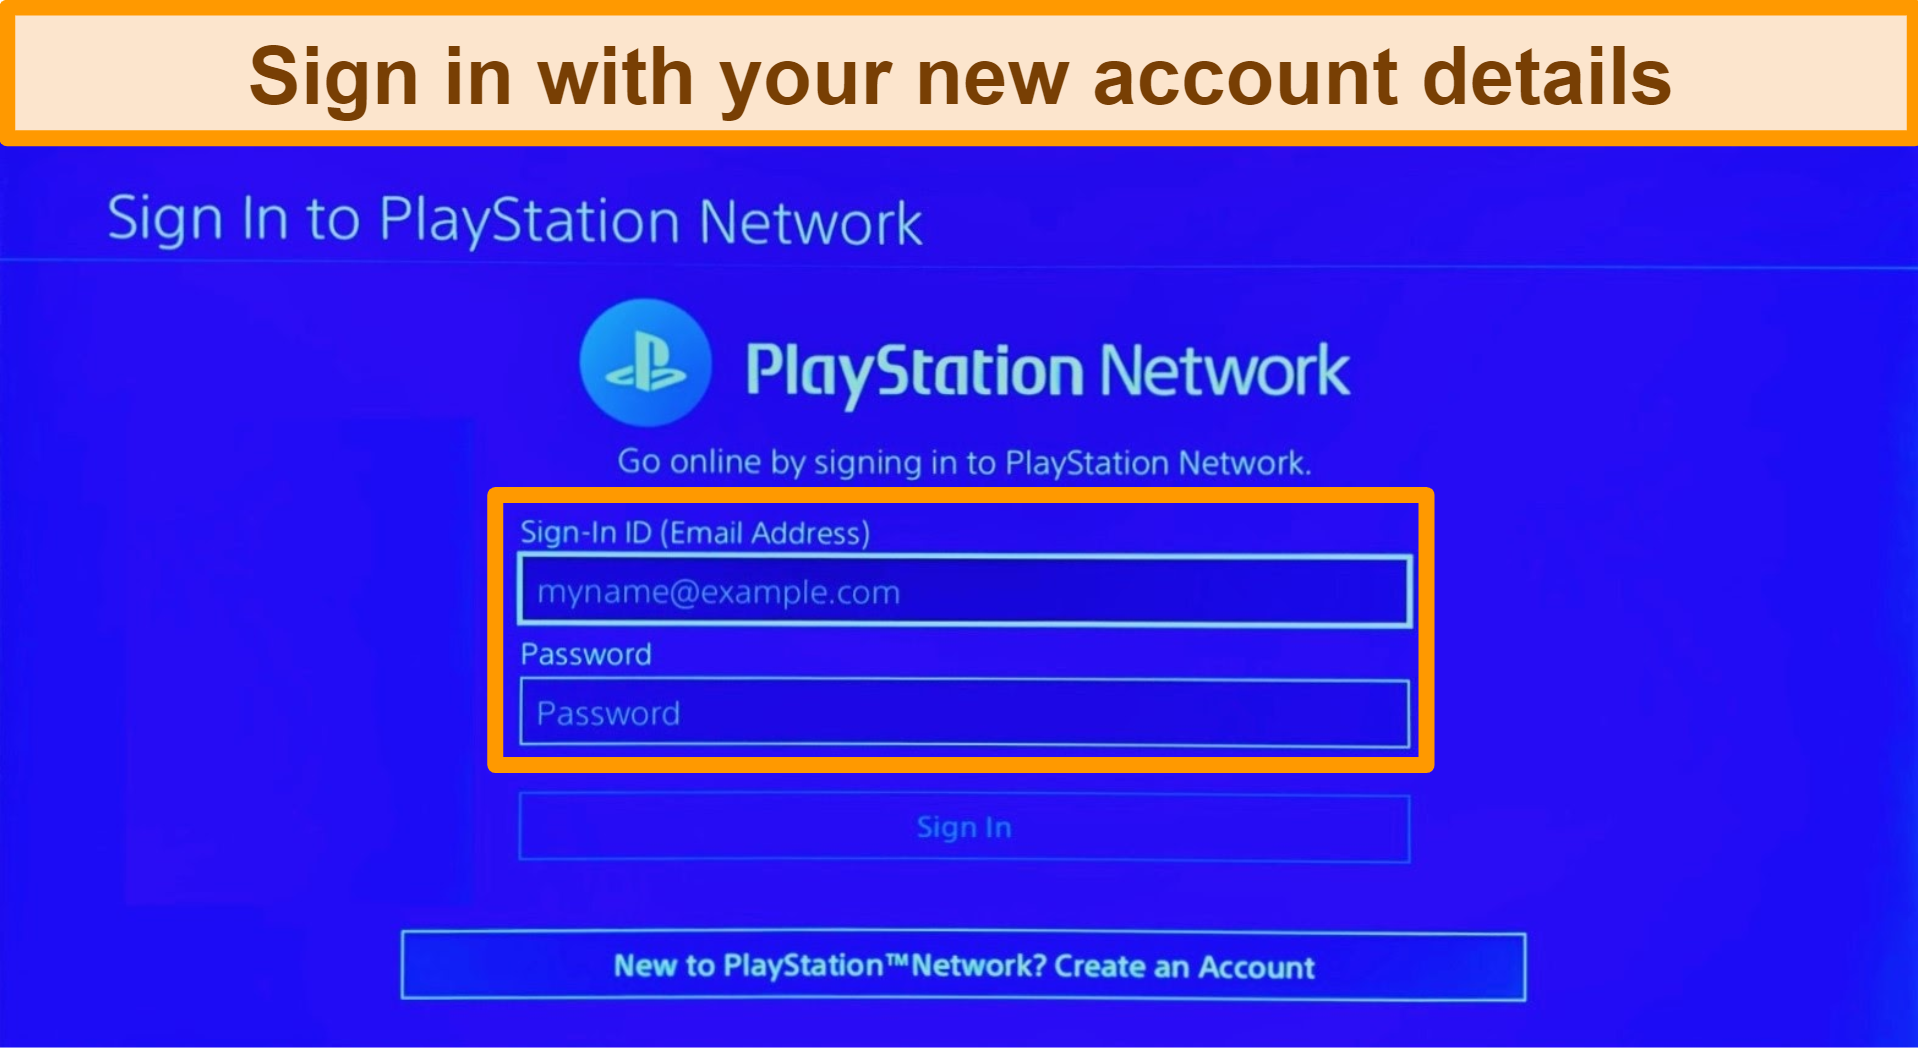 Screenshot of PlayStation Network account sign in screen